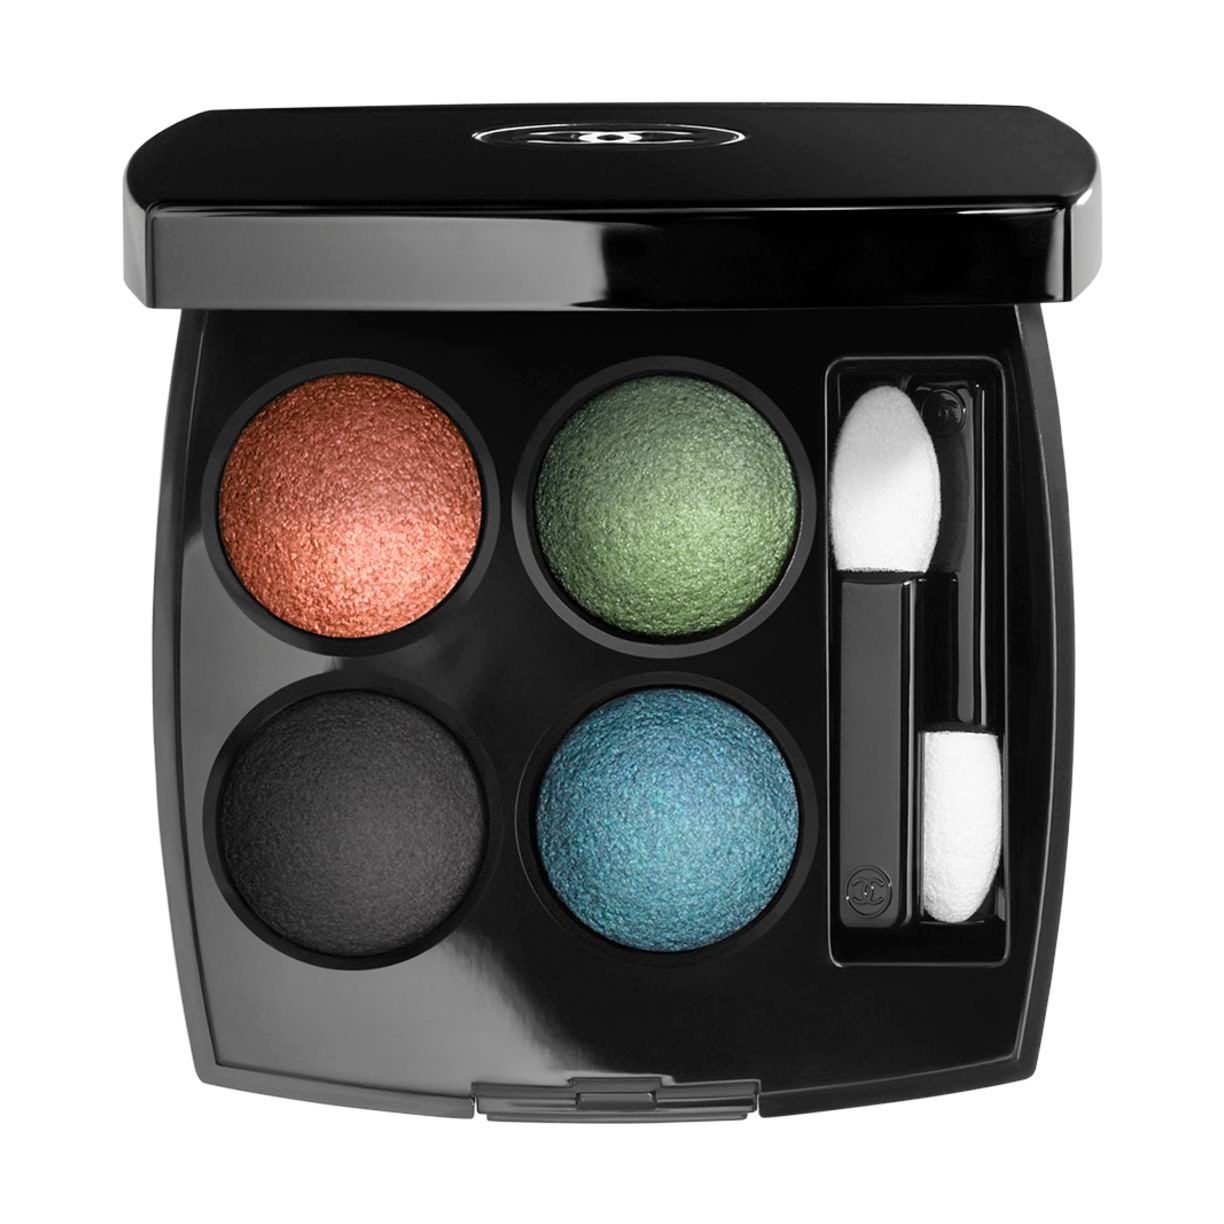 LES 4 OMBRES MULTI-EFFECT QUADRA EYESHADOW 306 - SPLENDEUR ET AUDACE